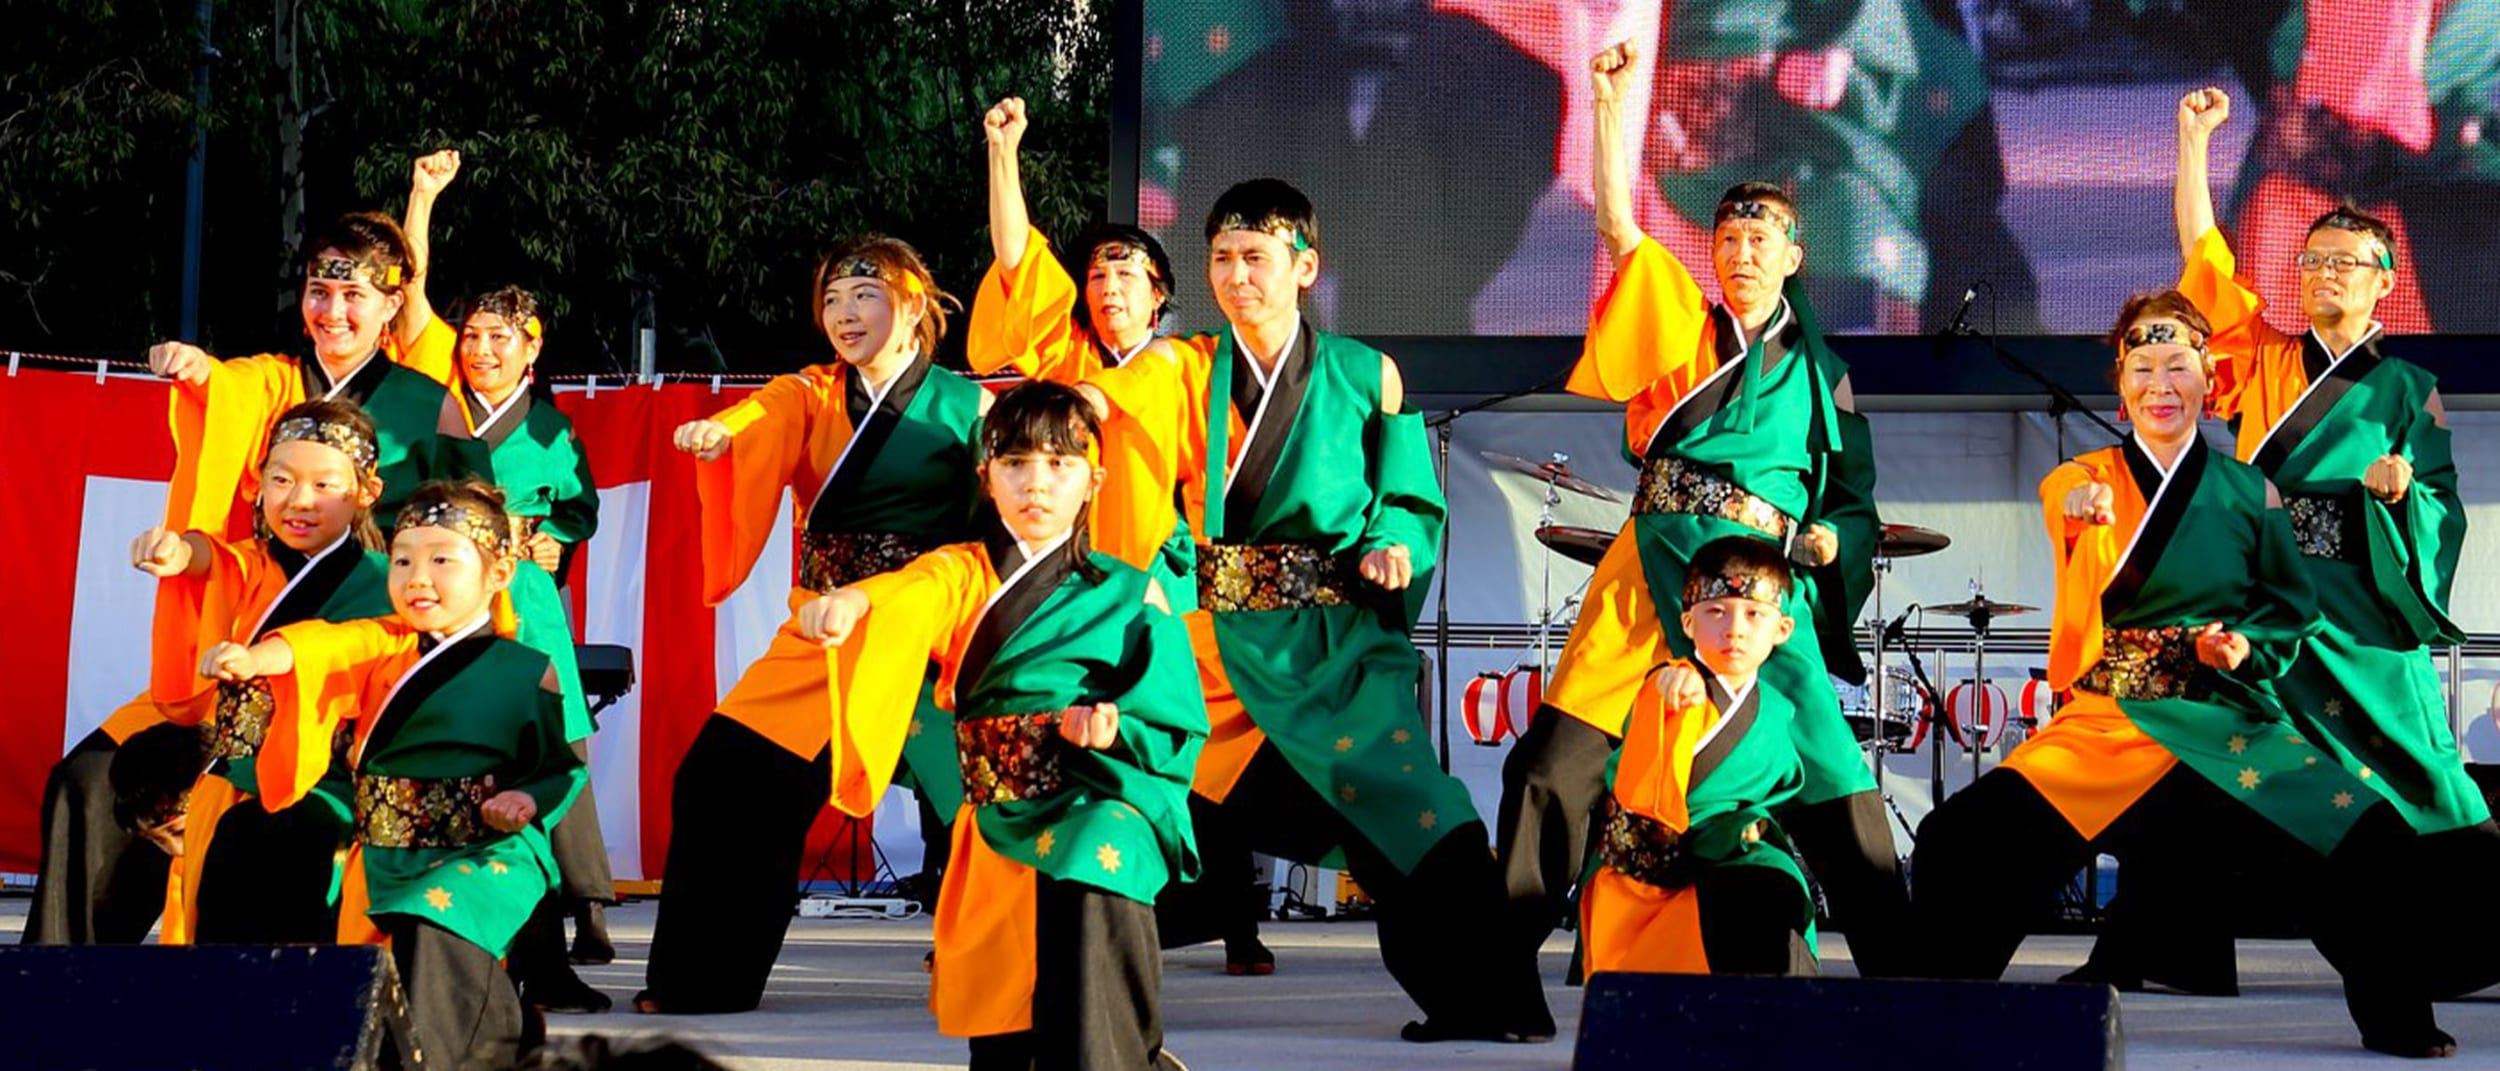 Soran Dance Troupe Performance